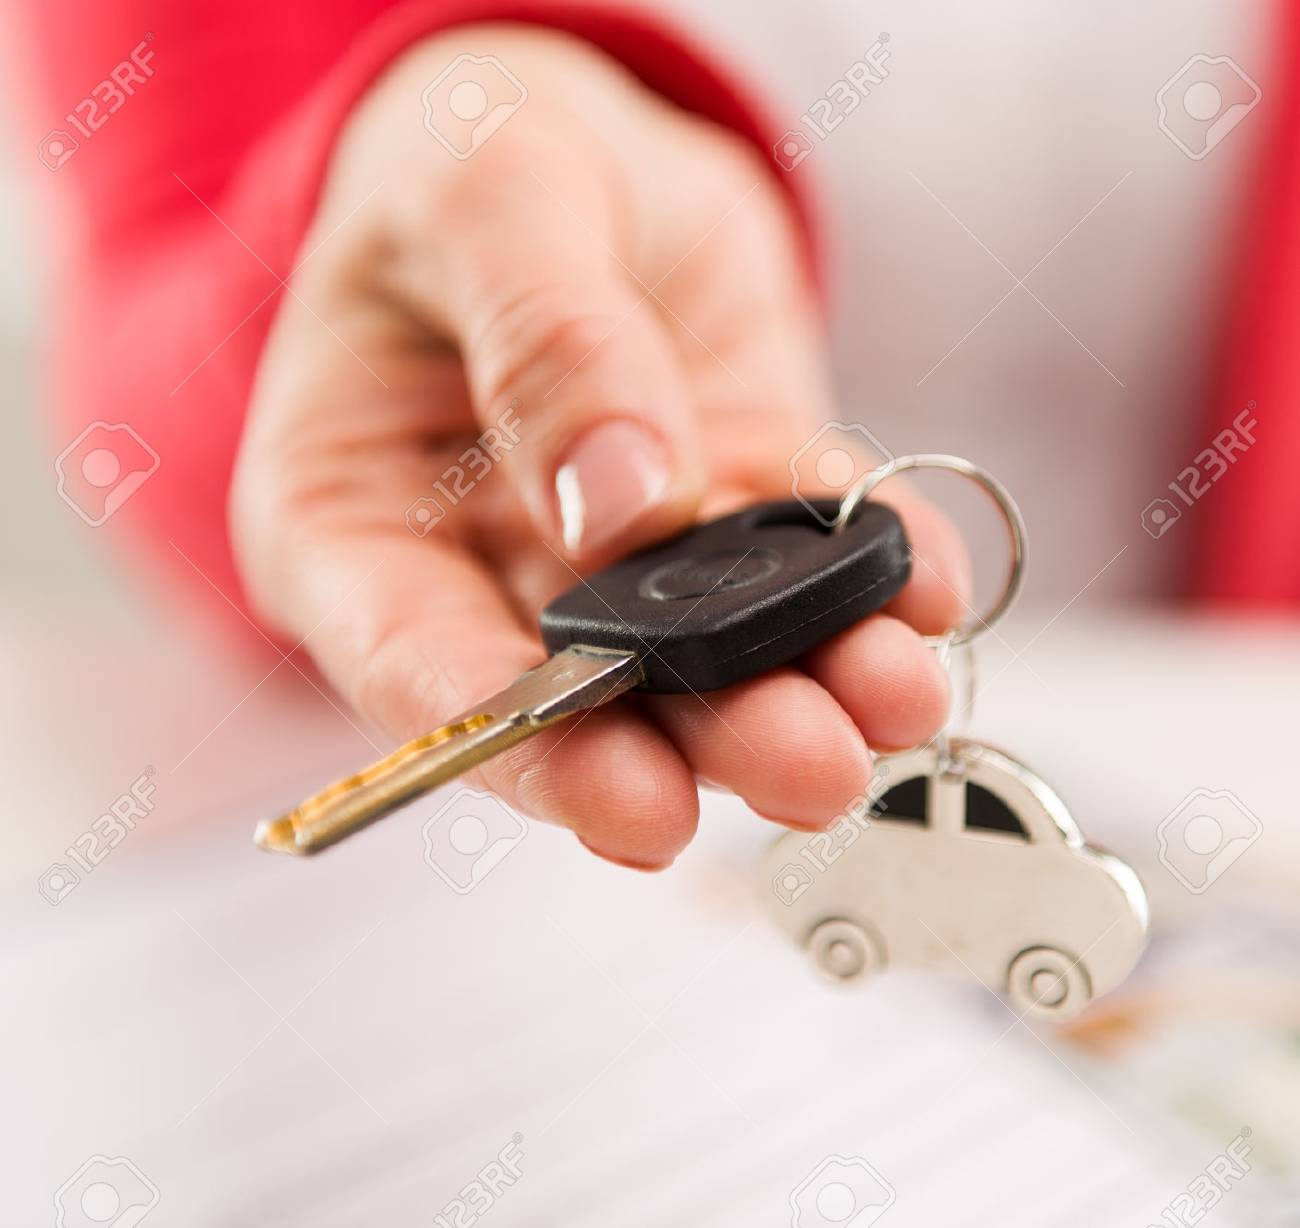 Closeup of female hand giving car key to buyer in automotive dealer - 39619474